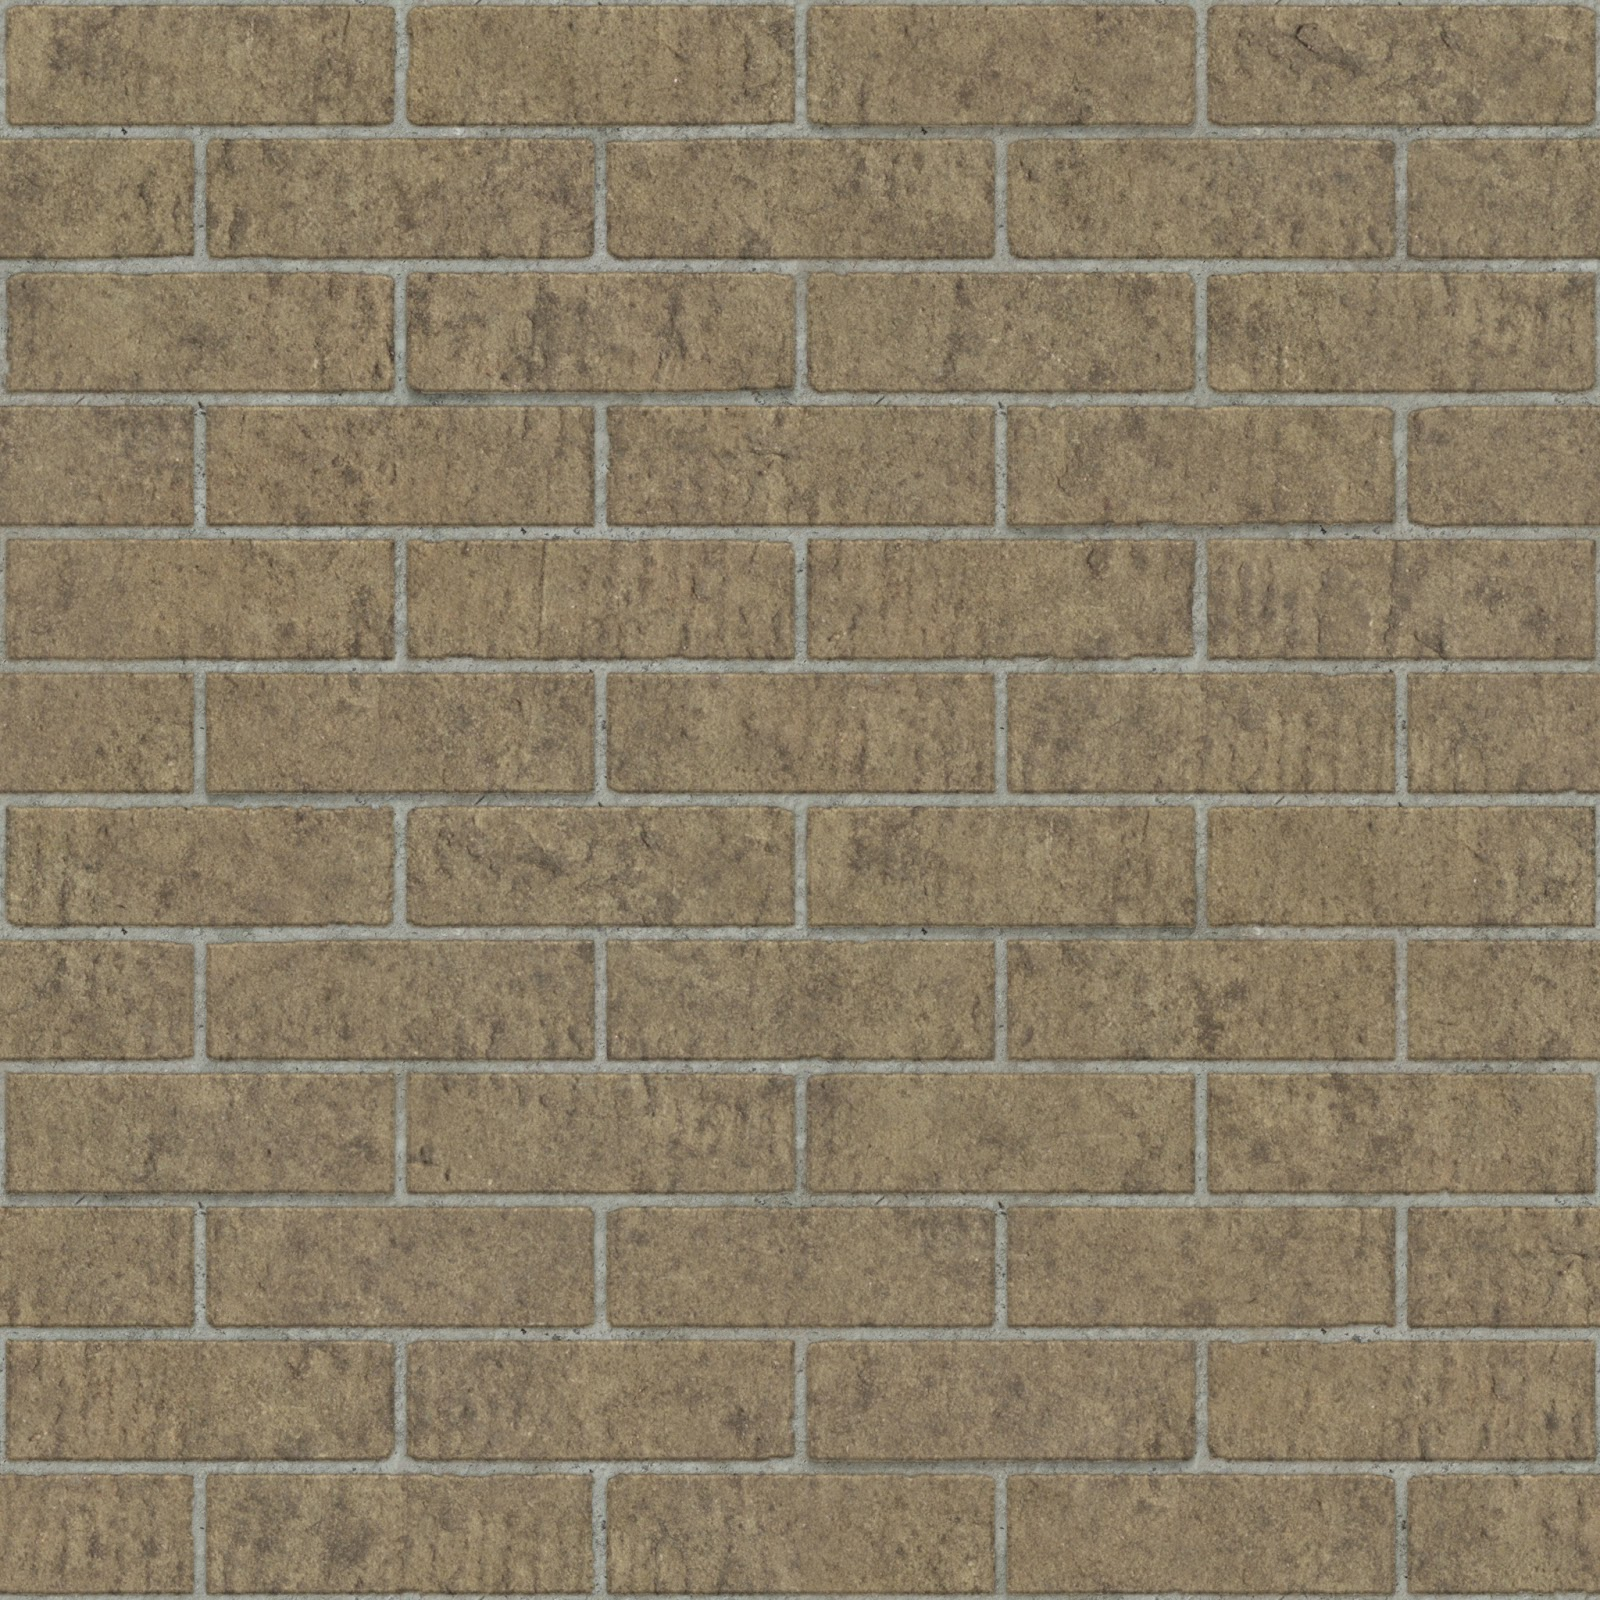 High Resolution Seamless Textures: Brick neat seamless ...